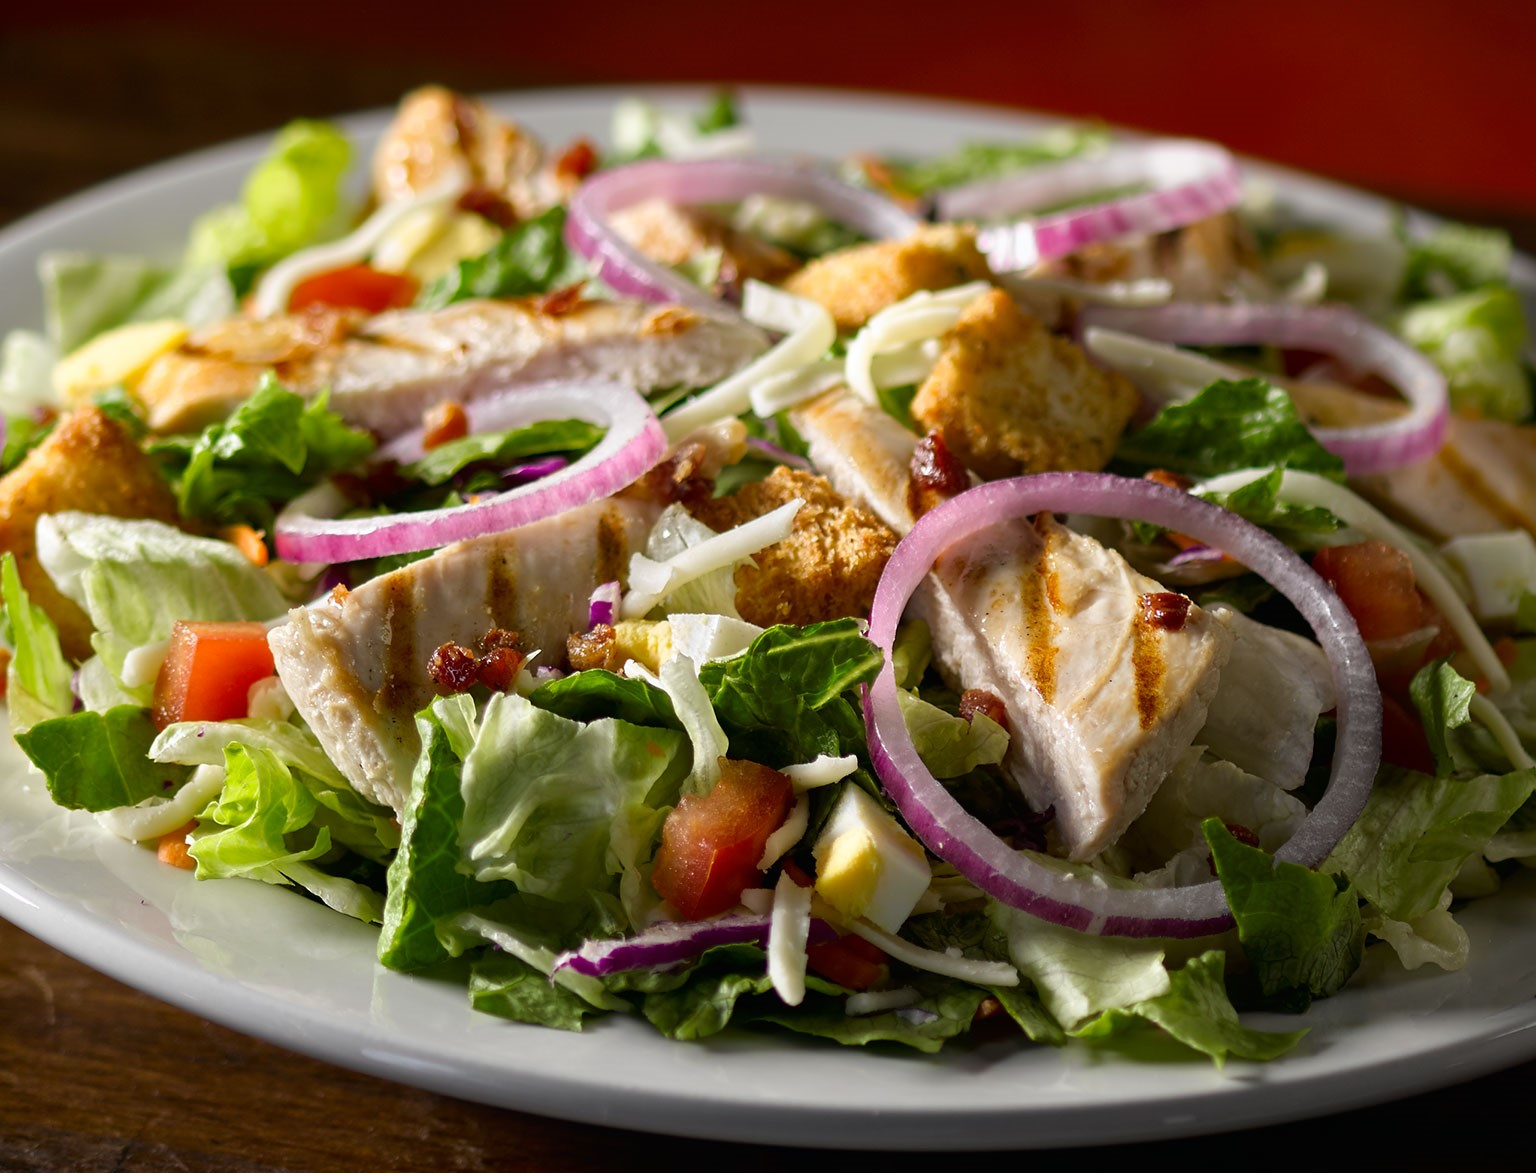 garden salad topped with chicken slices, onions, tomatoes and croutons